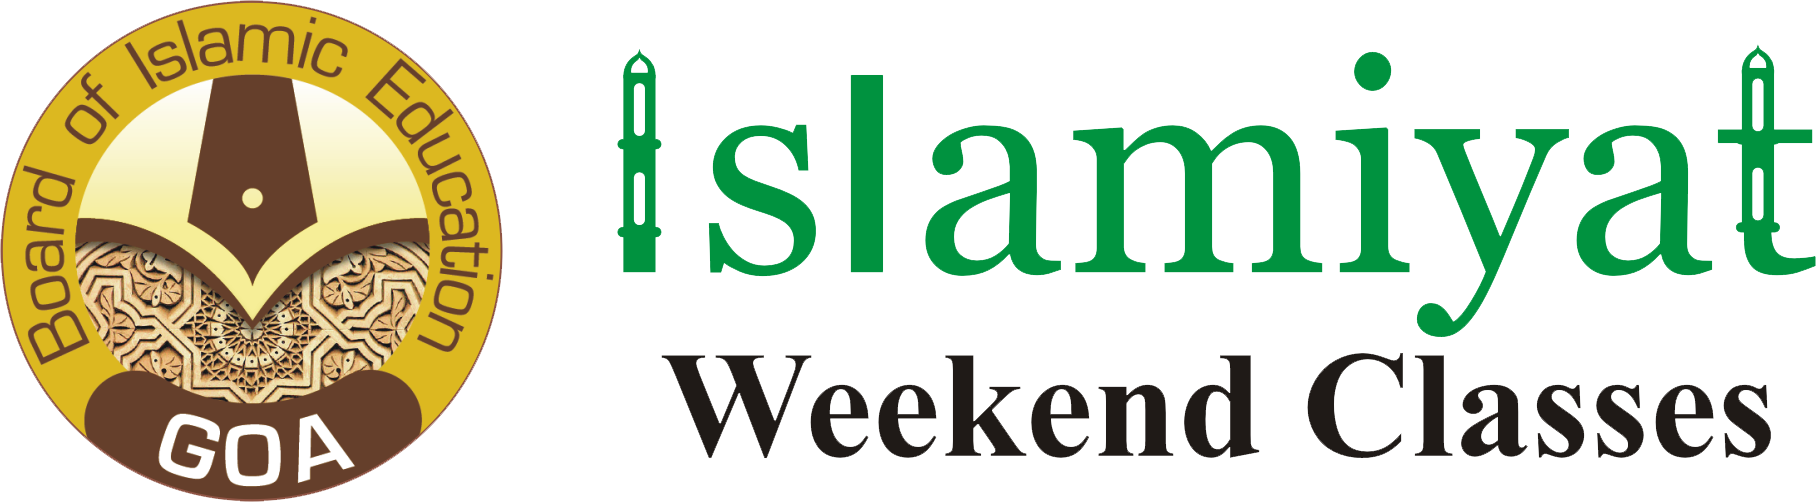 Islamic Weekend Classes